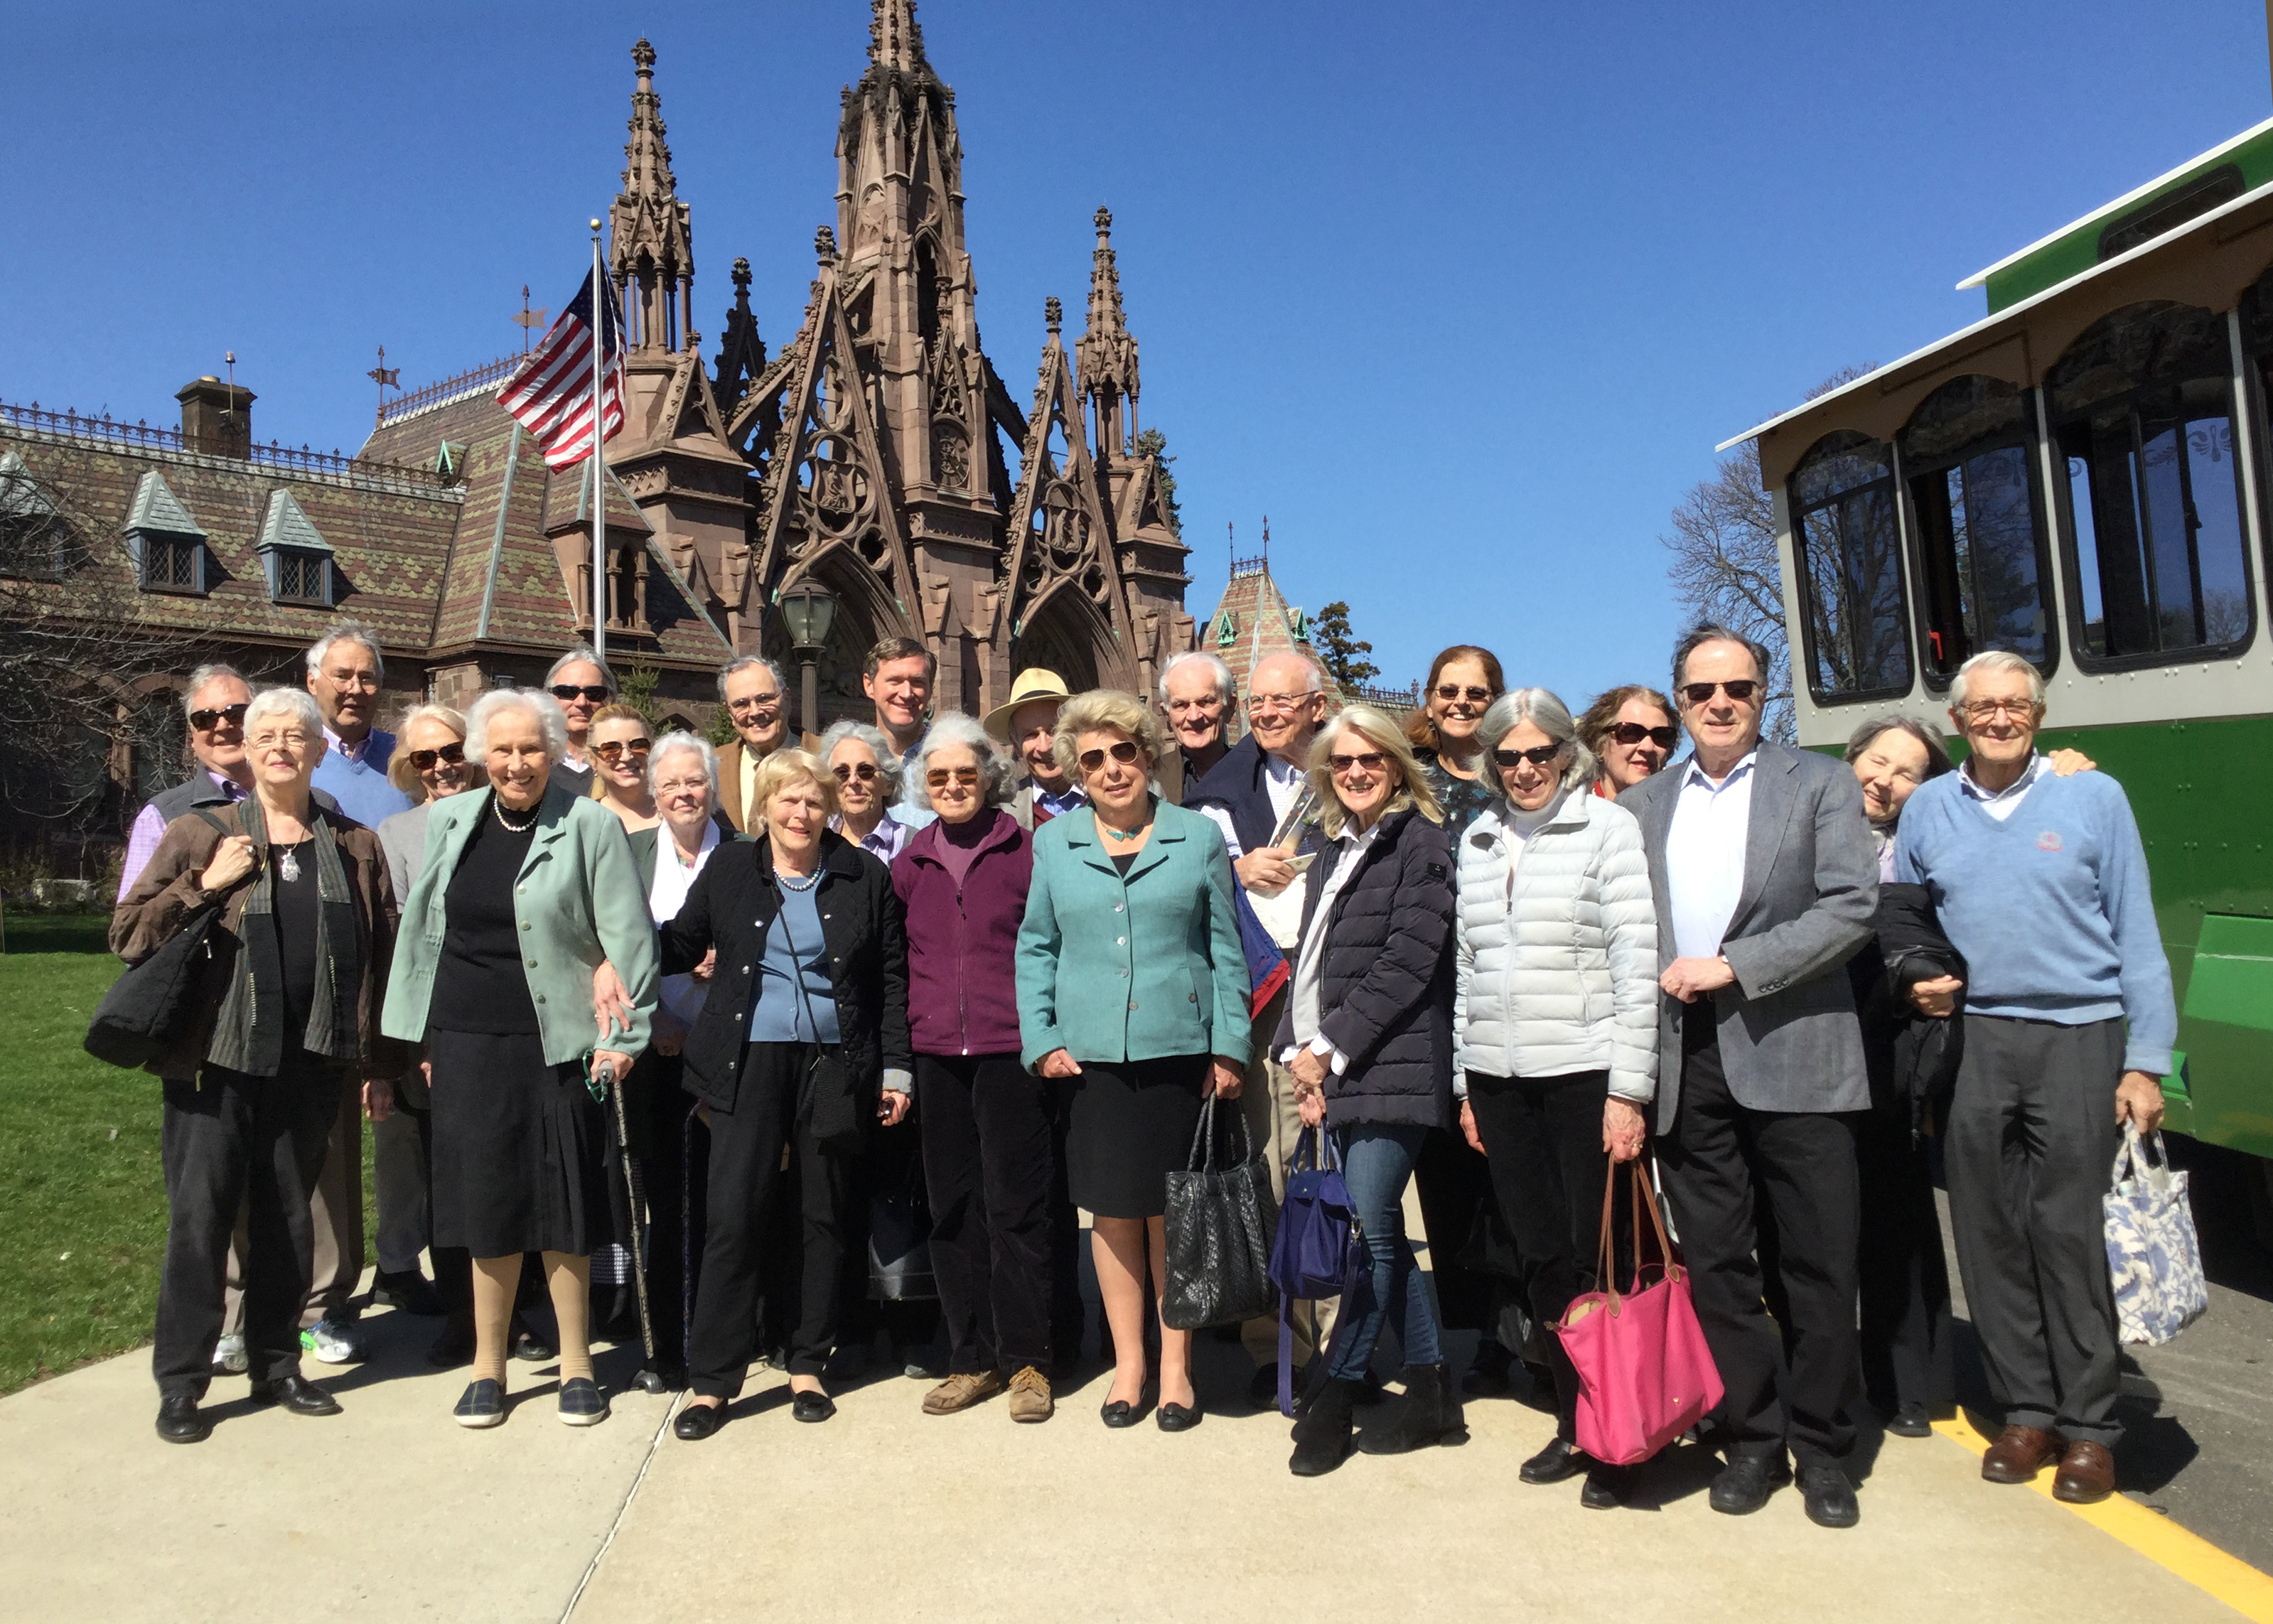 Green-Wood Cemetery tour - waiting to begin